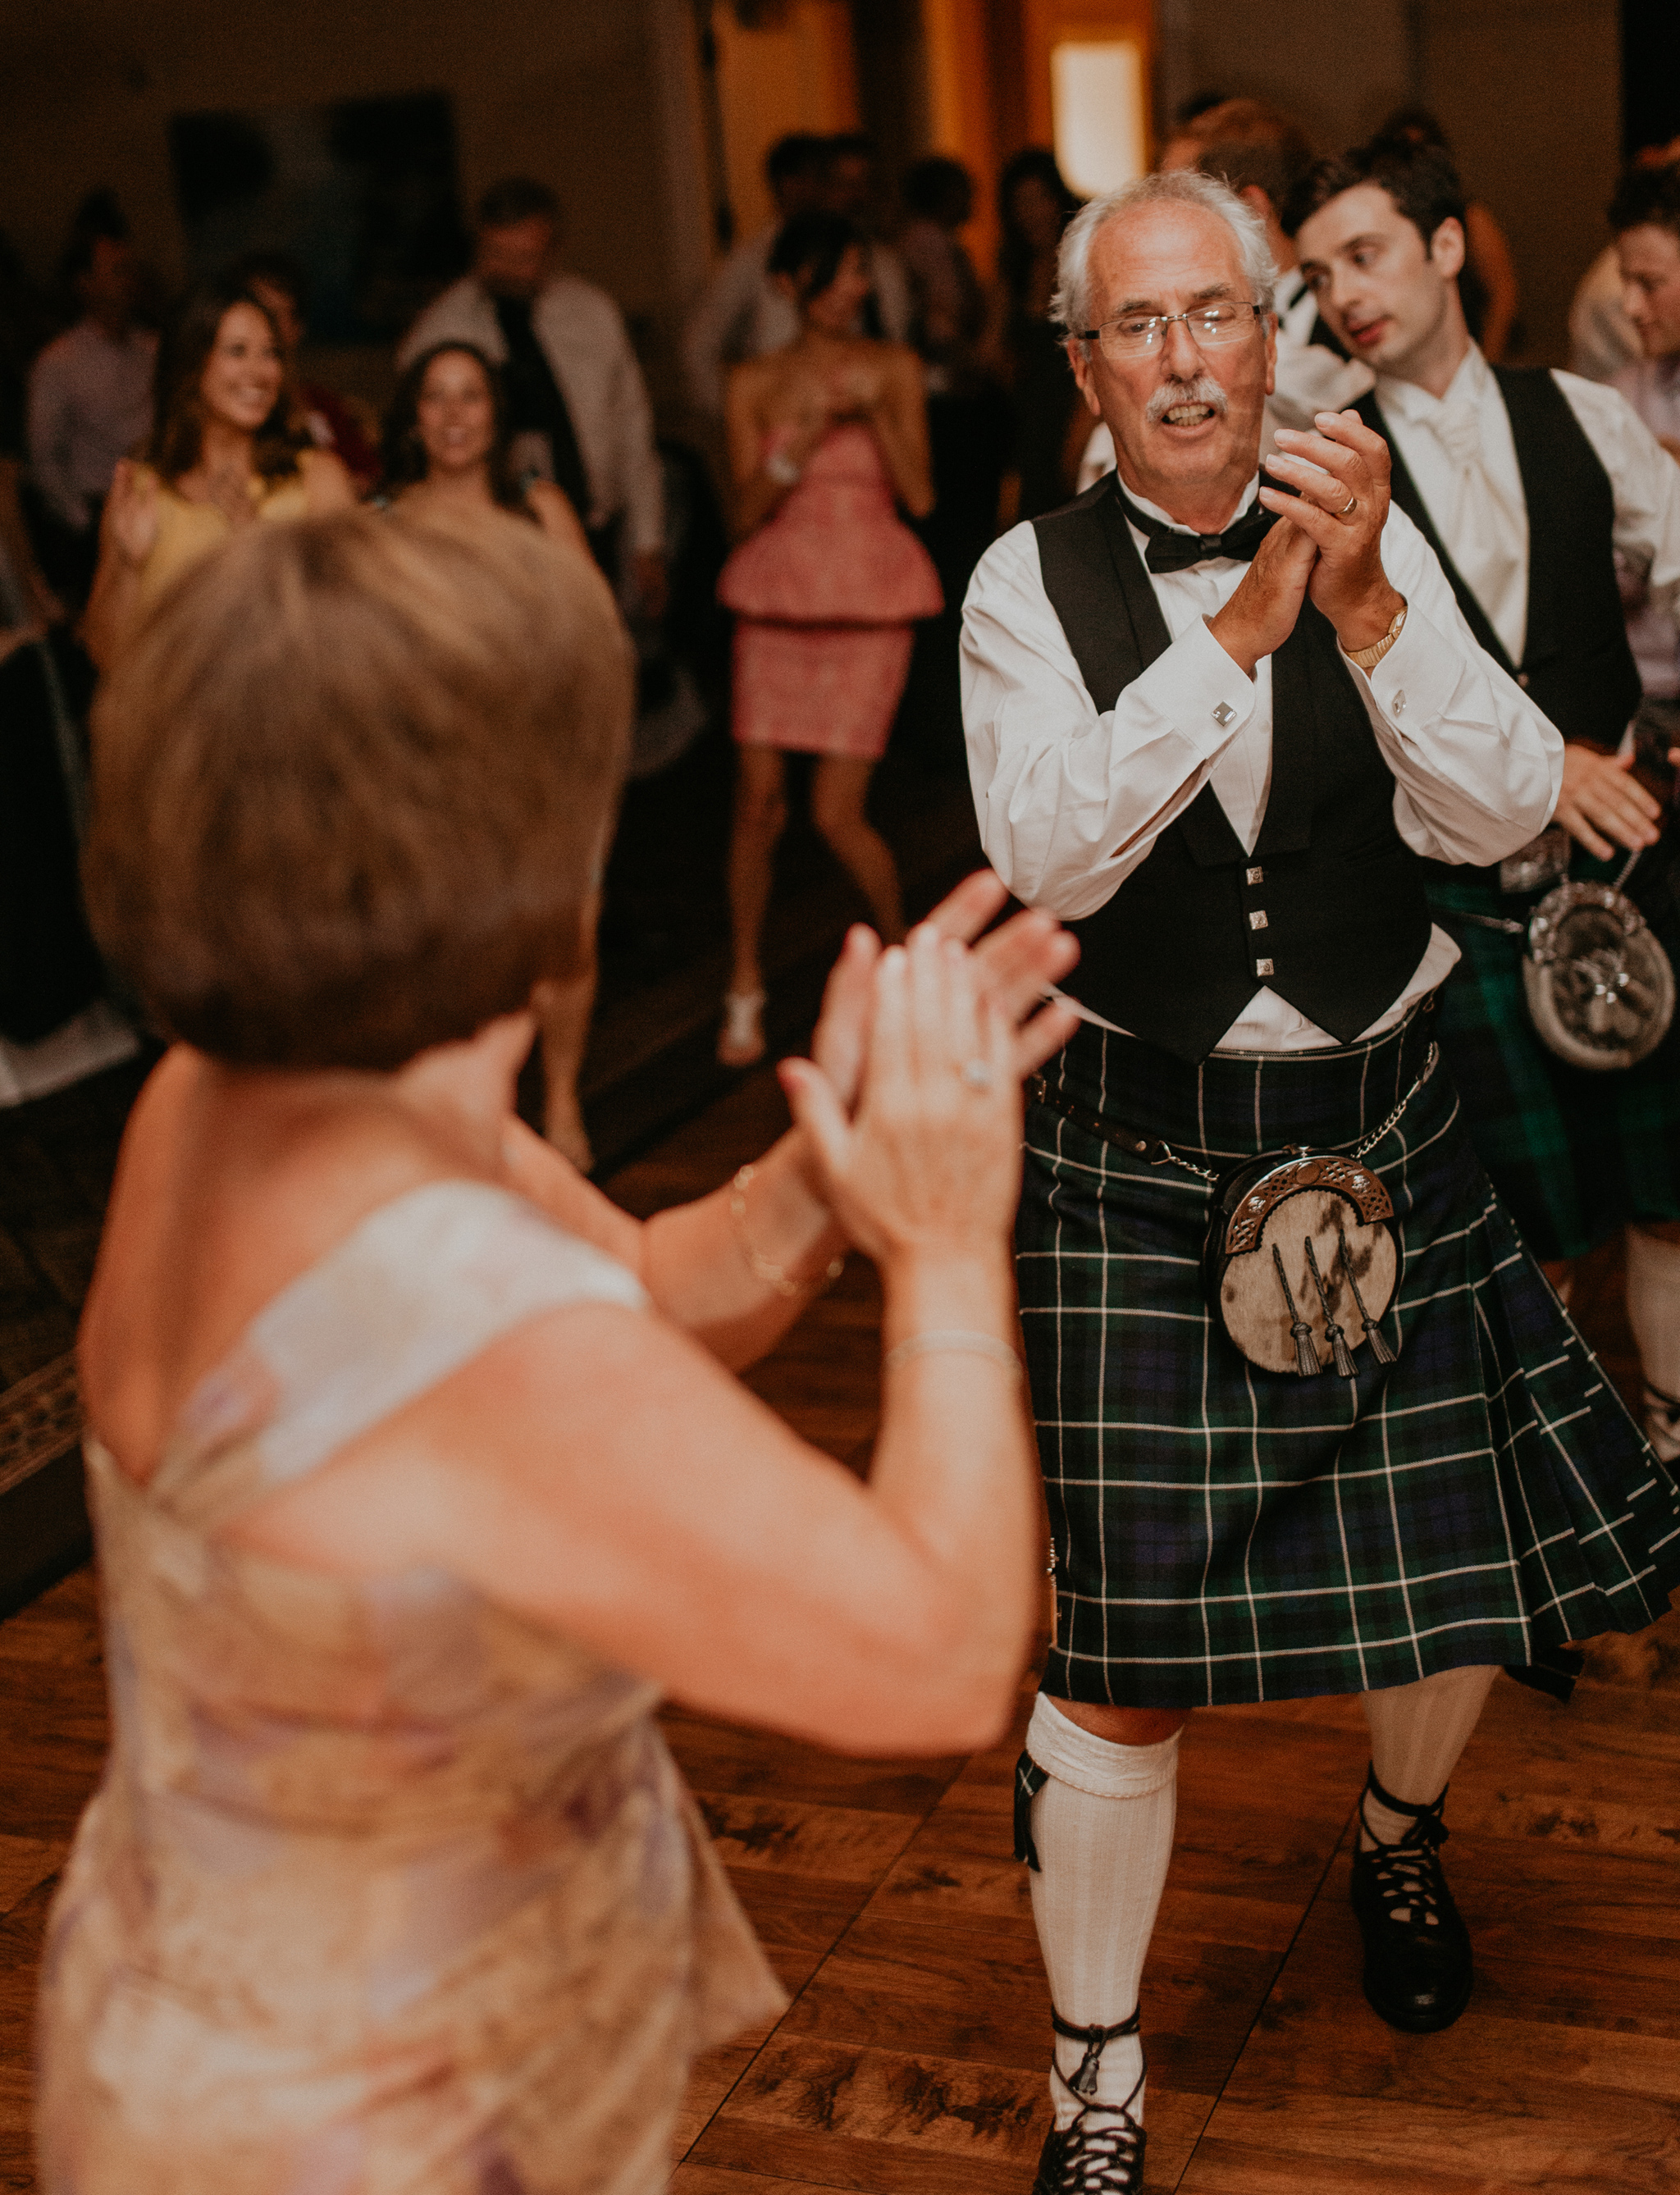 Father of the groom dances in kilt at wedding reception